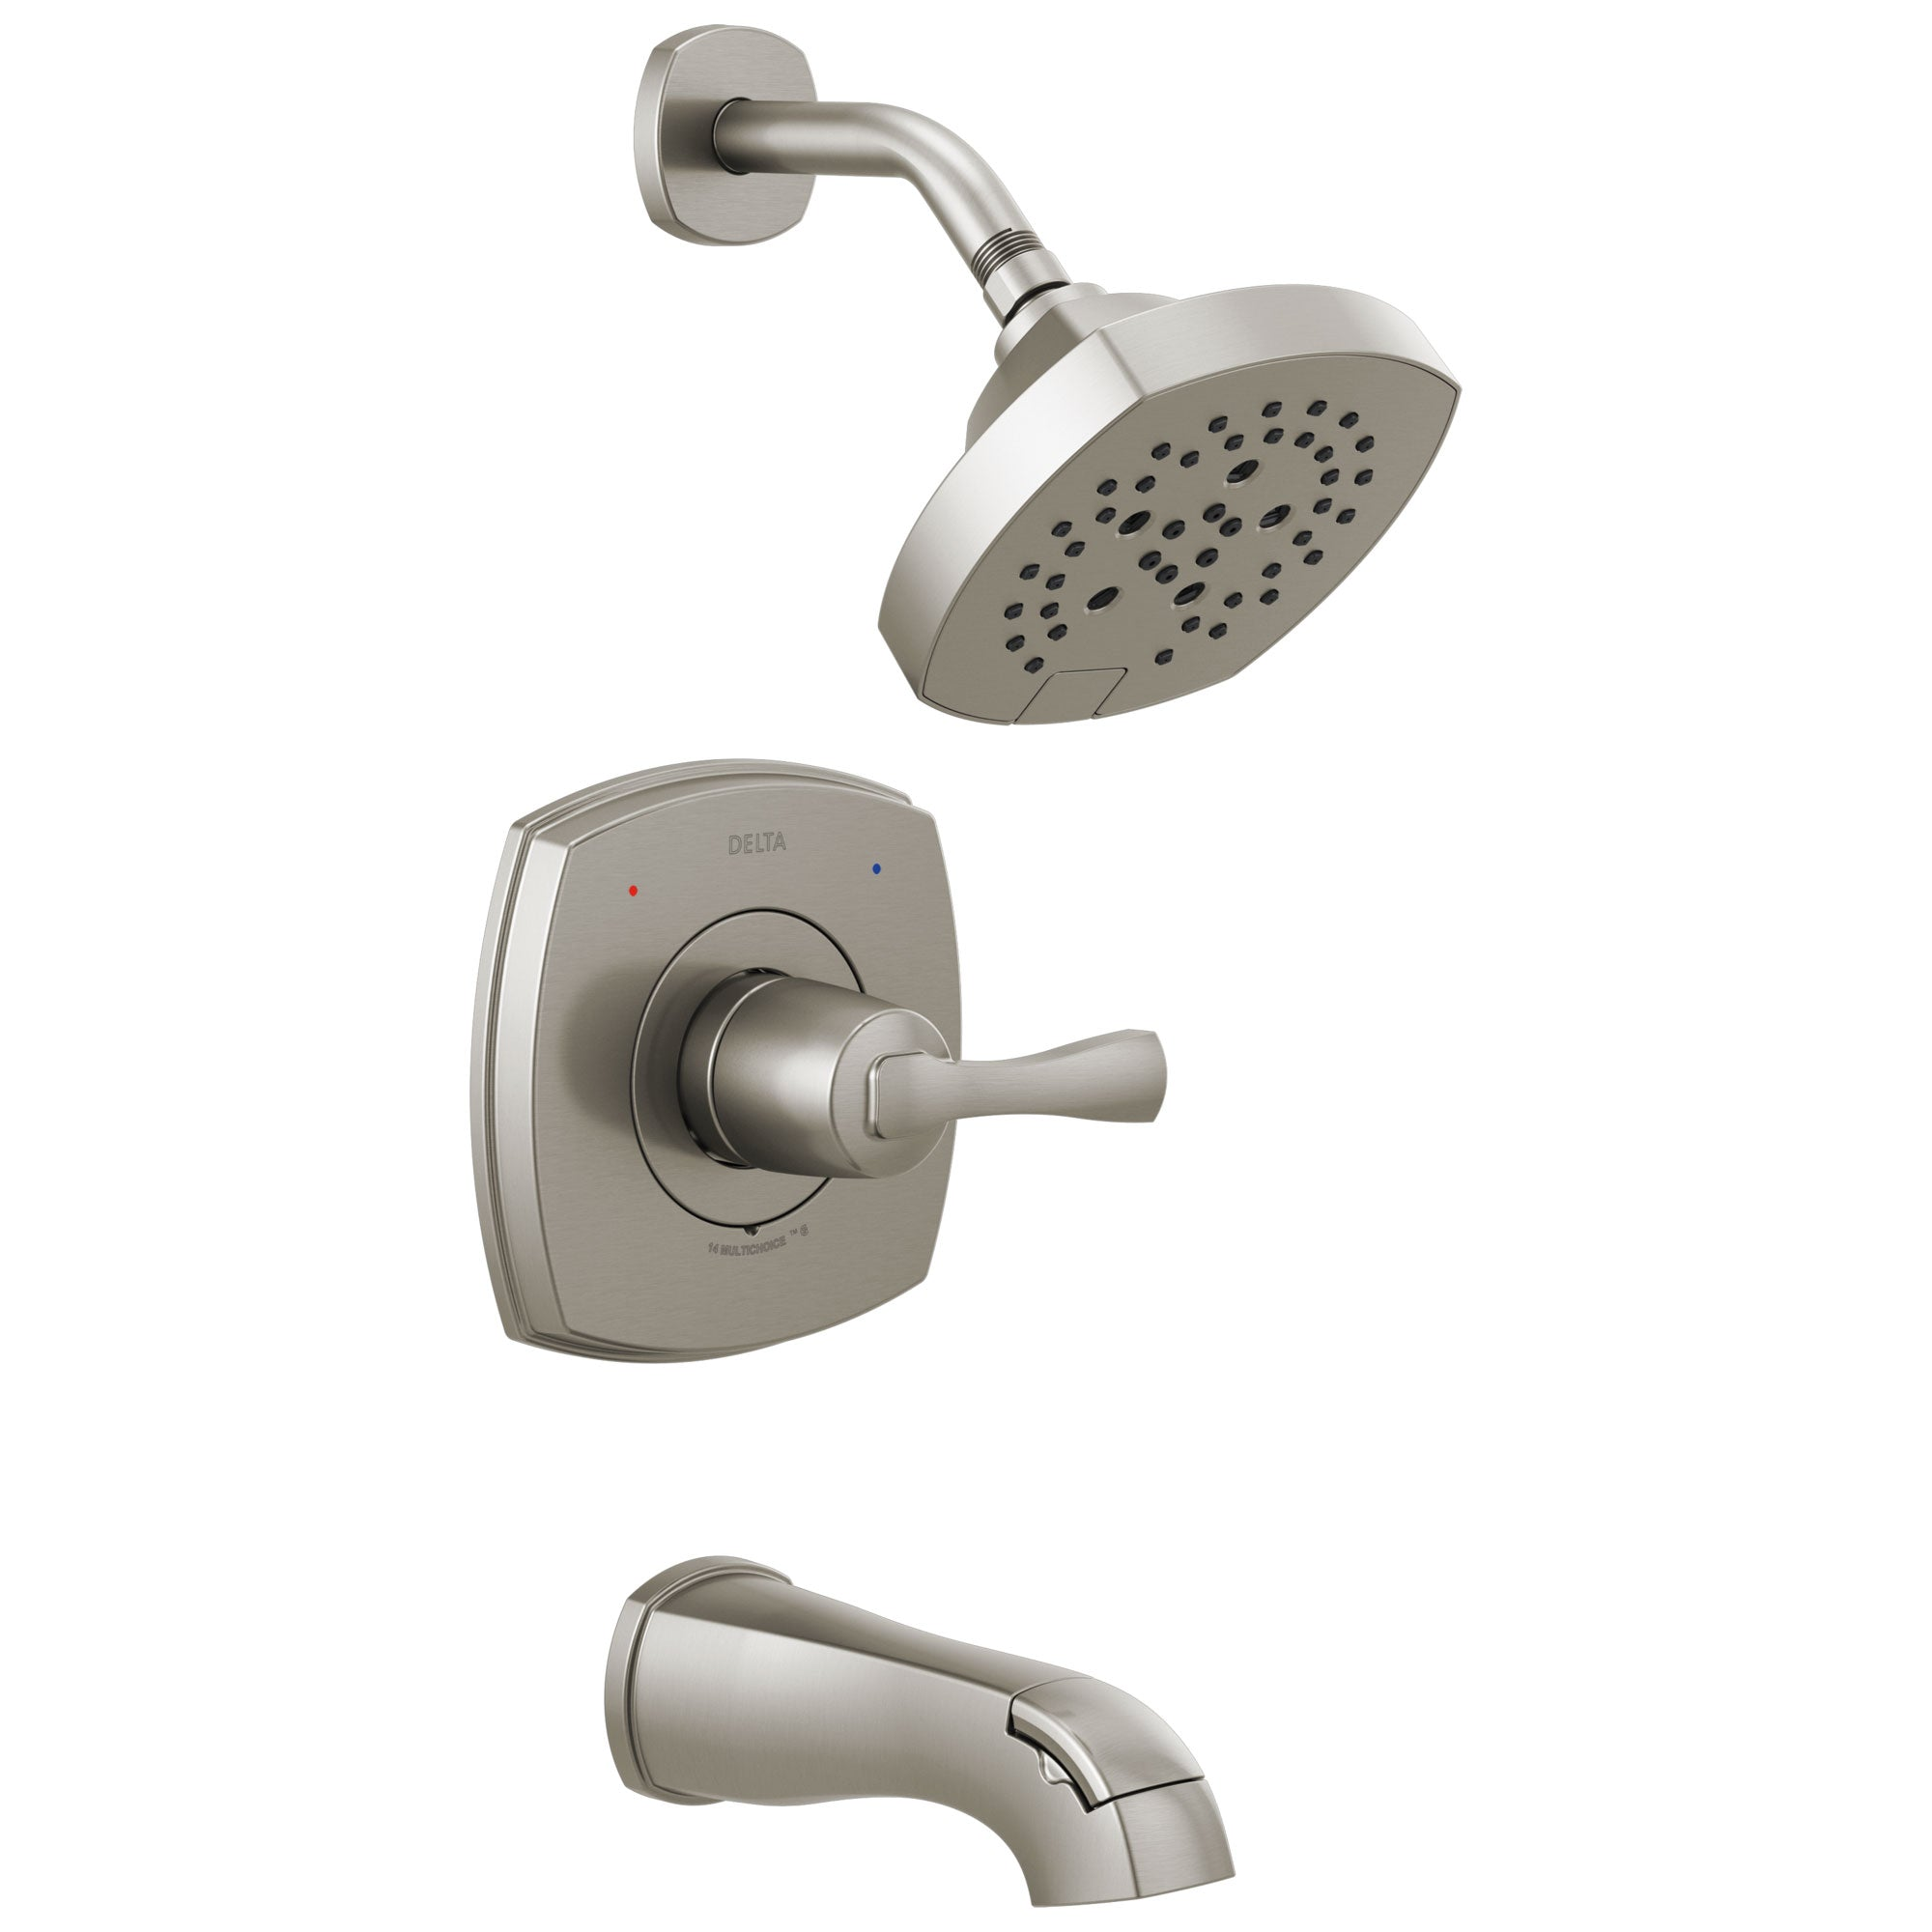 Delta Stryke Stainless Steel Finish 14 Series Tub & Shower Combination Faucet Includes Single Lever Handle, Cartridge, and Valve without Stops D3427V